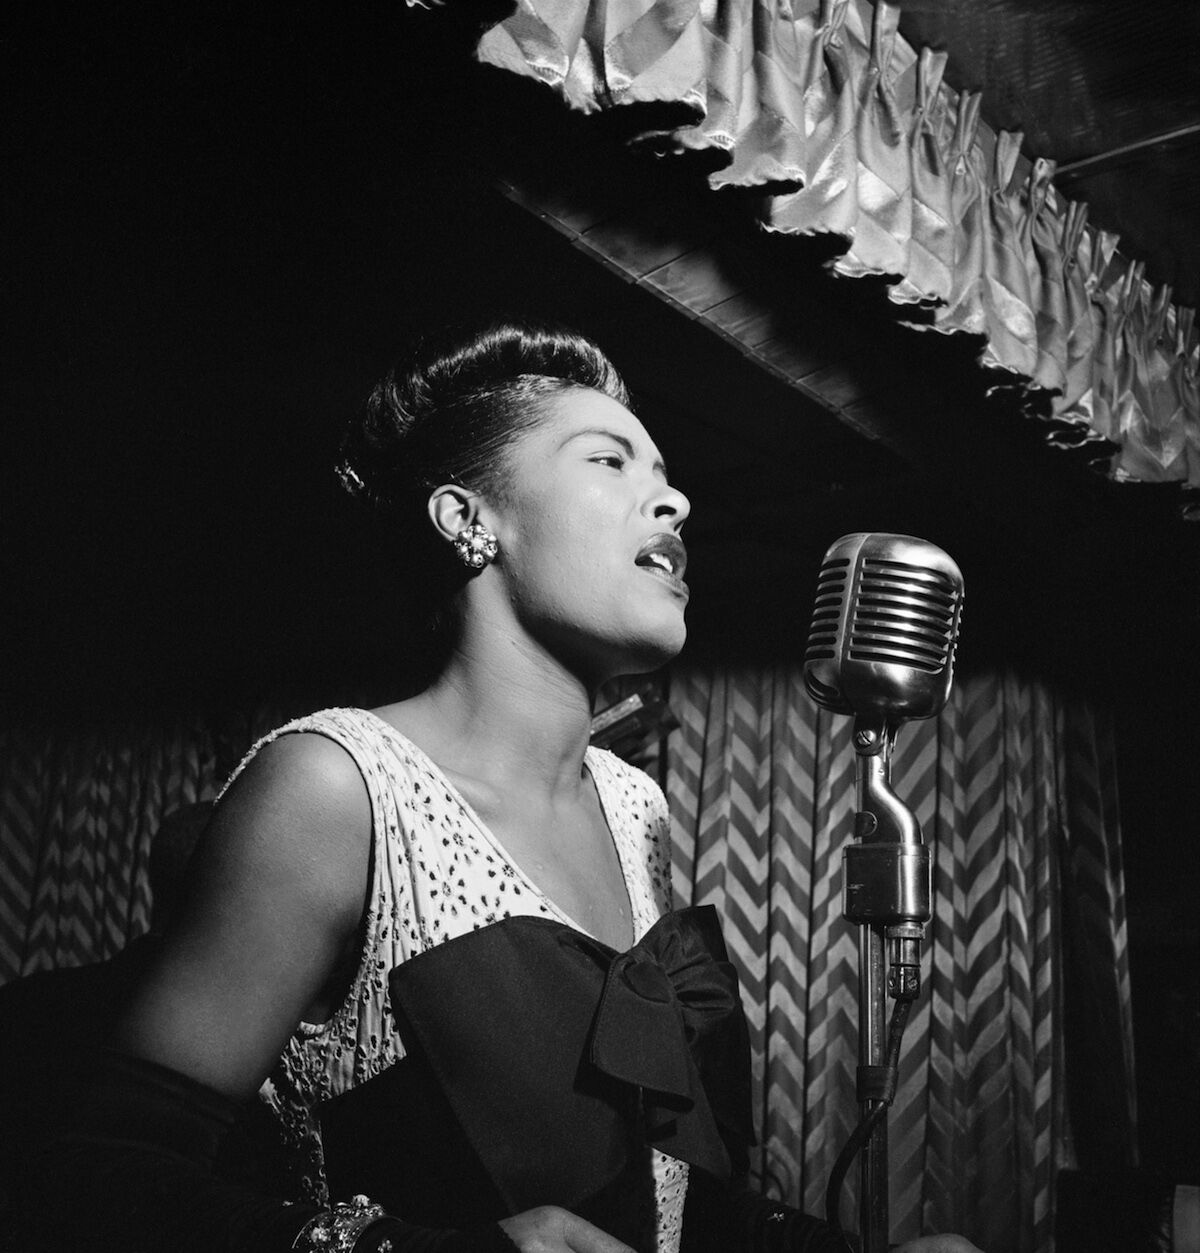 Billie Holiday performing in New York City circa 1947. Photo by William P. Gottlieb, courtesy the Library of Congress, via Wikimedia Commons.